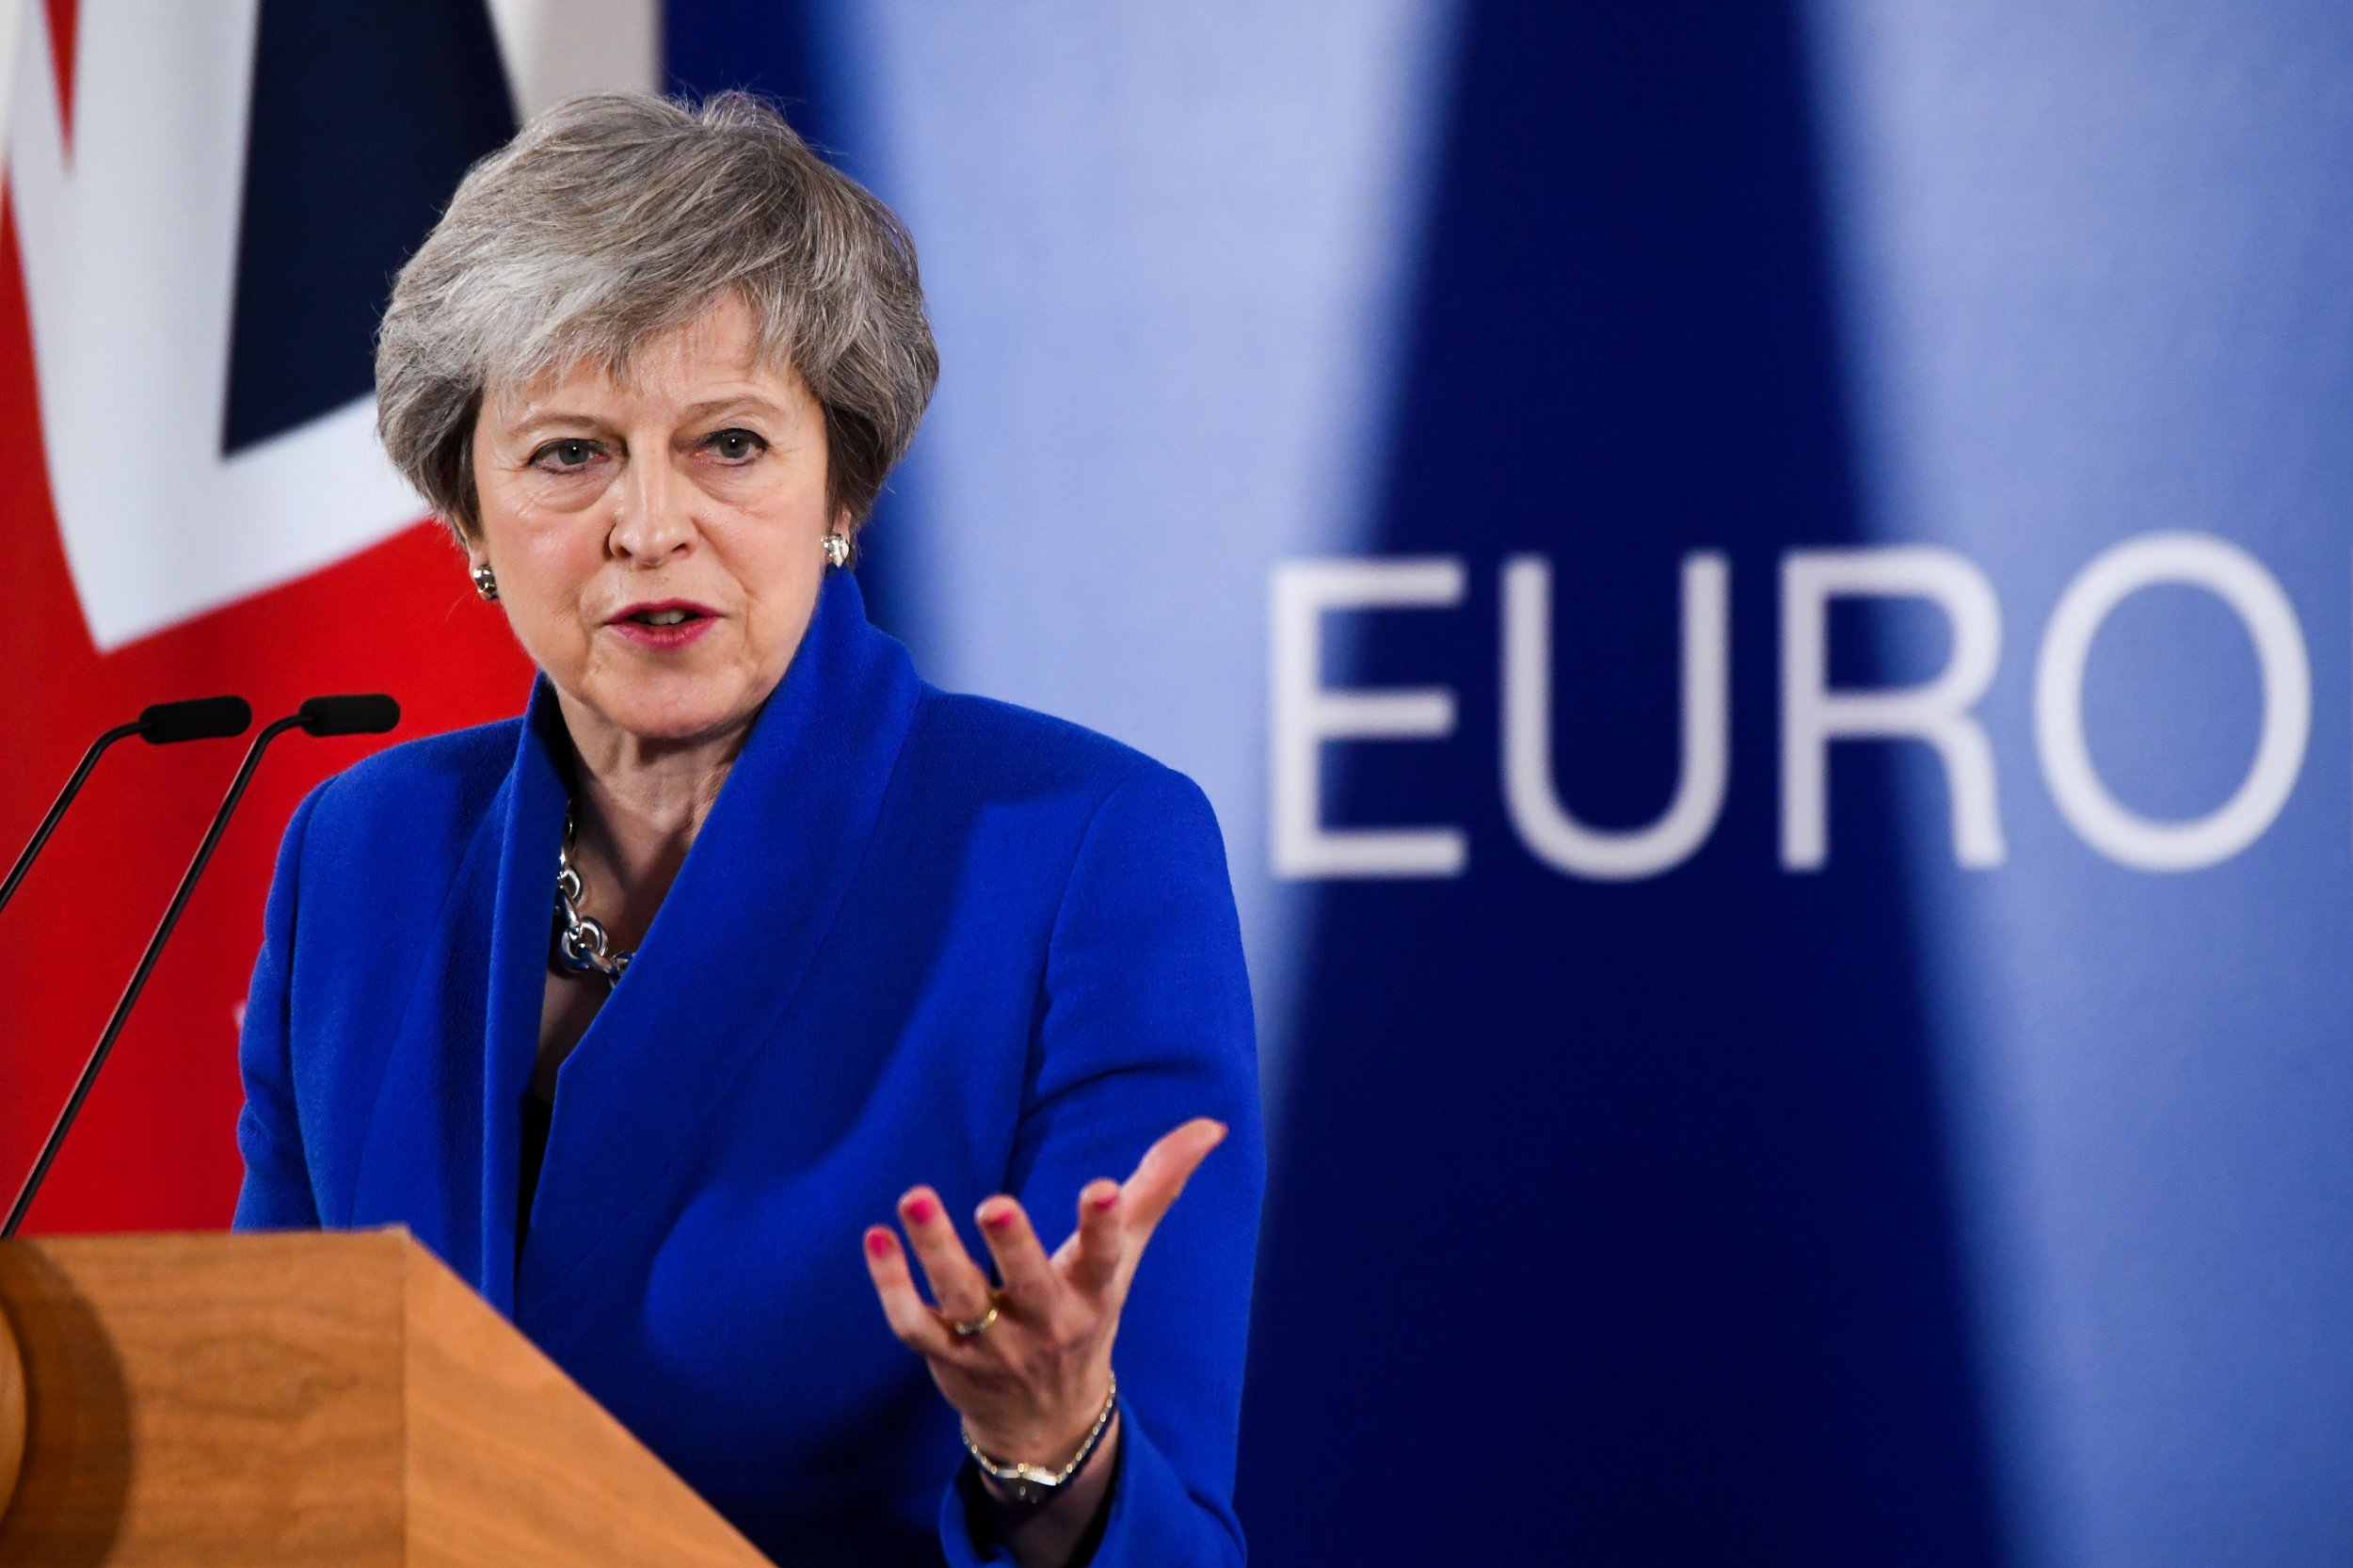 Mandatory Credit: Photo by Isopix/REX/Shutterstock (9991924bo) Theresa May - Round Table at the special meeting of the European Council. The leaders of the 27 remaining EU member countries (EU27) meet 'to endorse the draft Brexit withdrawal agreement and to approve the draft political declaration on future EU-UK relations' in a special meeting of the European Council on Britain leaving the EU under Article 50. Brexit summit, Brussels, Belgium - 25 Nov 2018